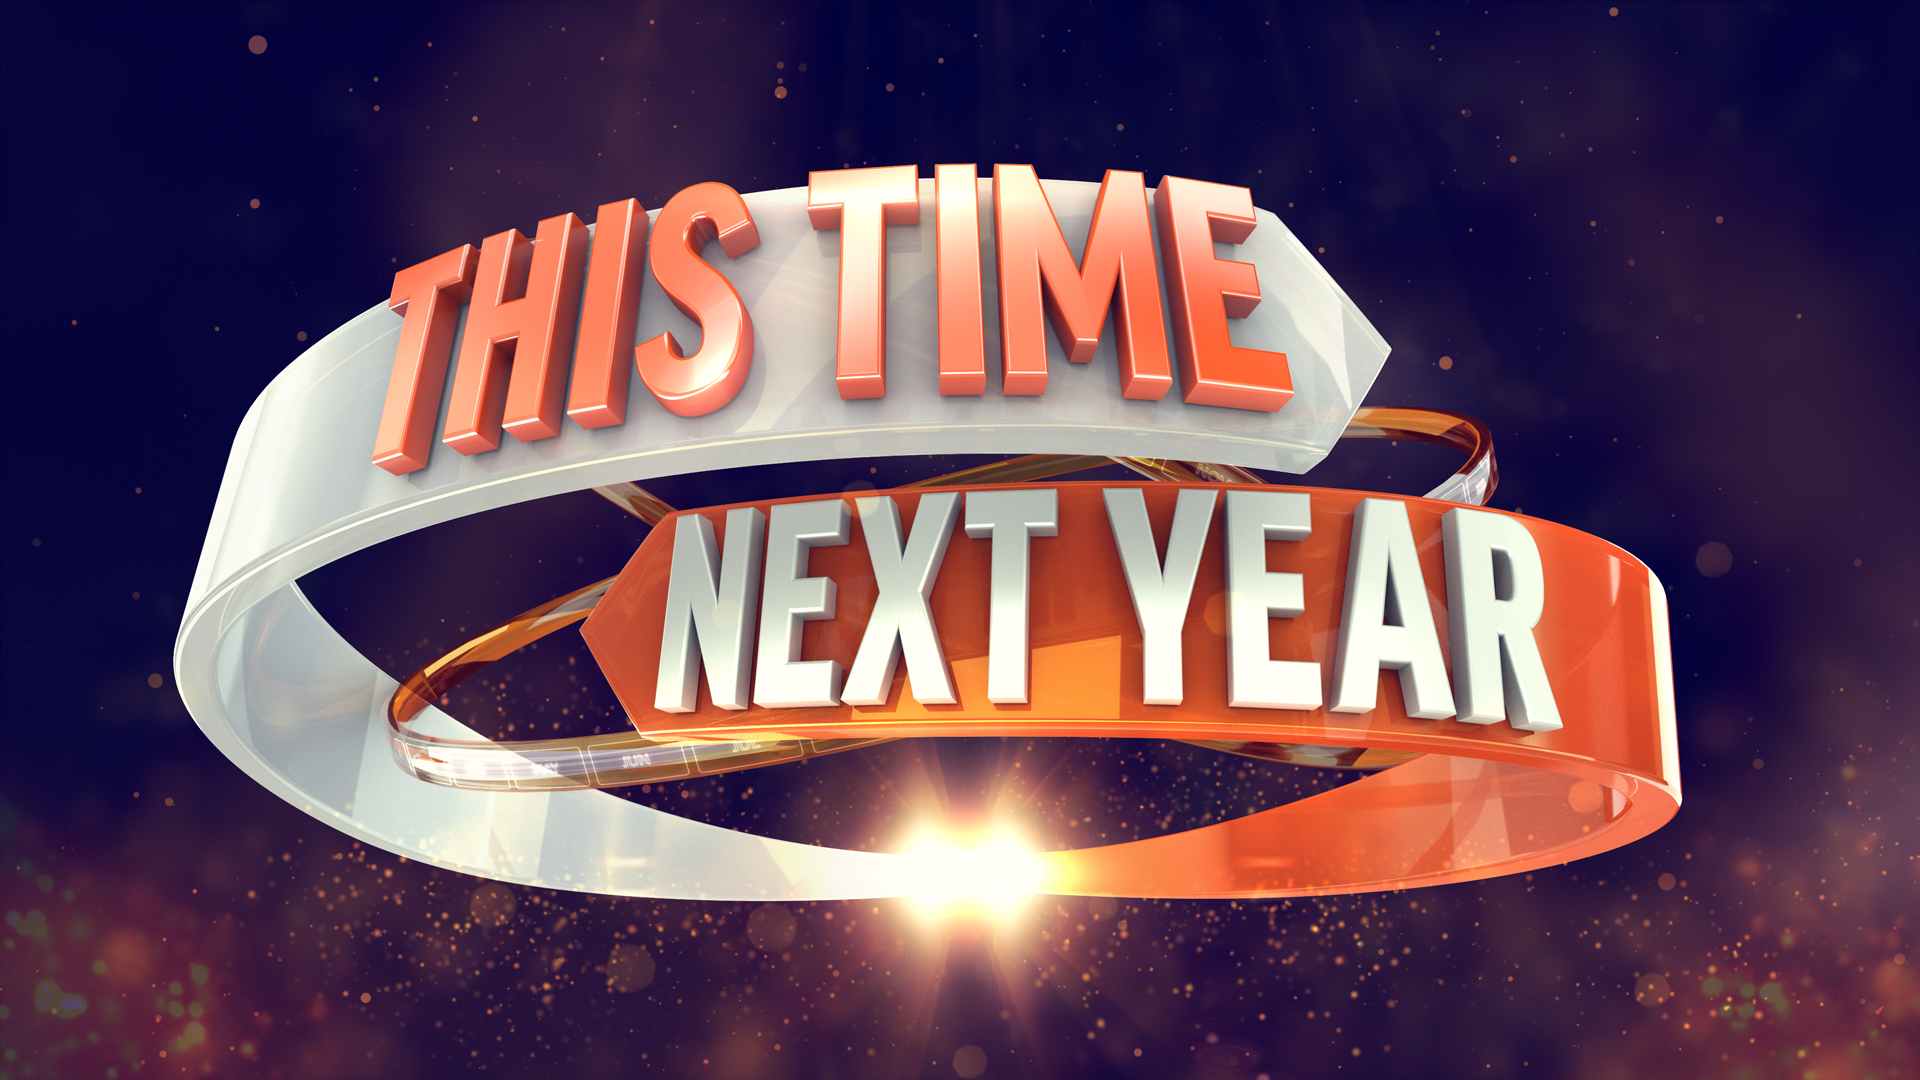 Nine Network: This Time Next Year